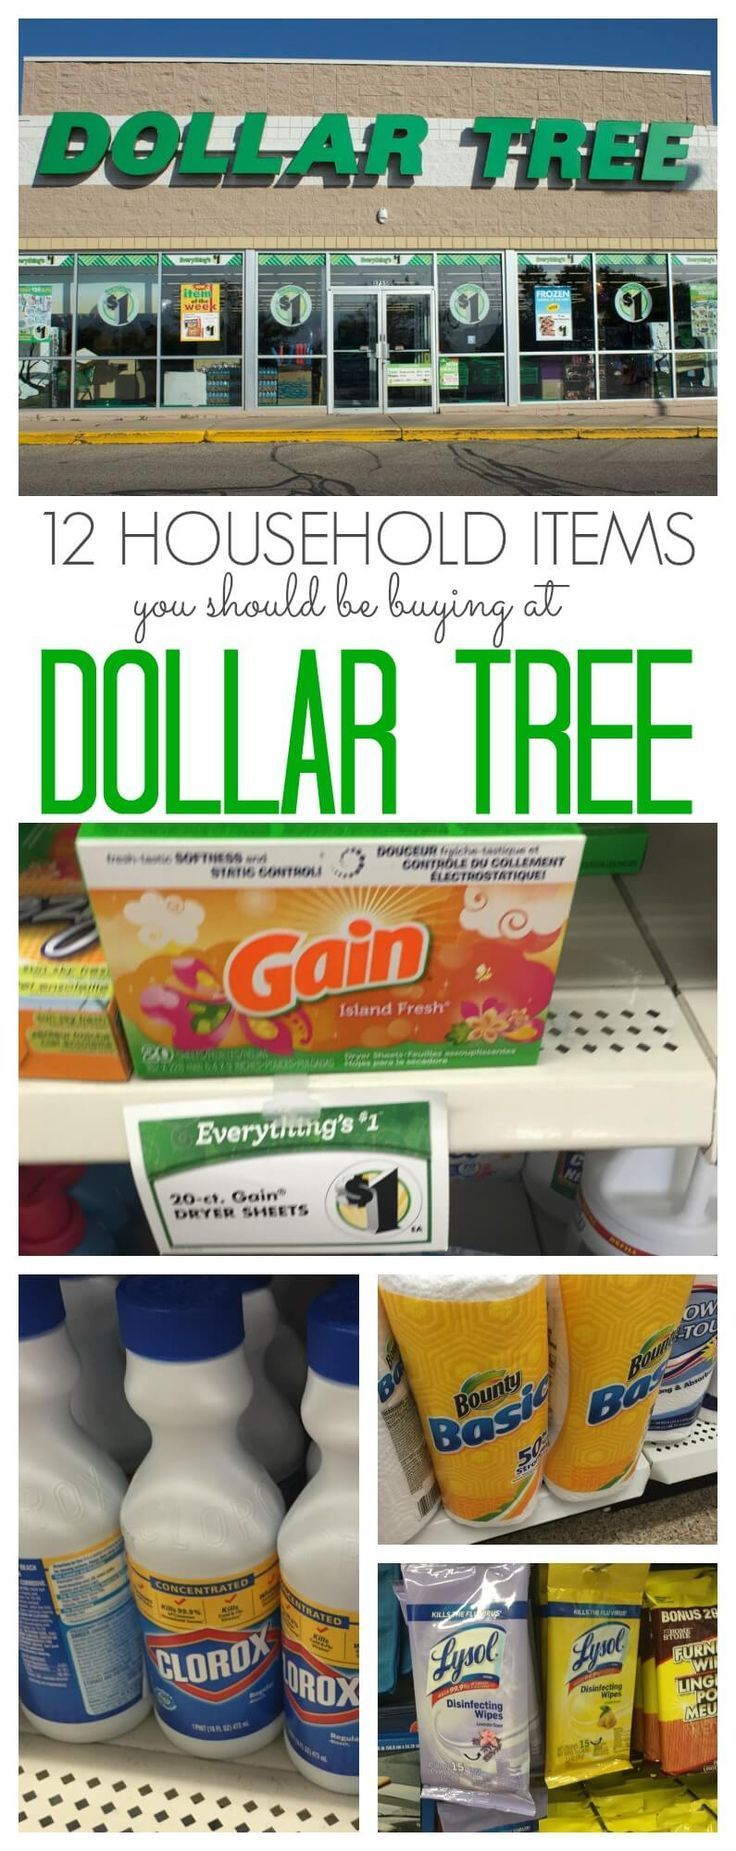 12 household items you should buy at the dollar tree here